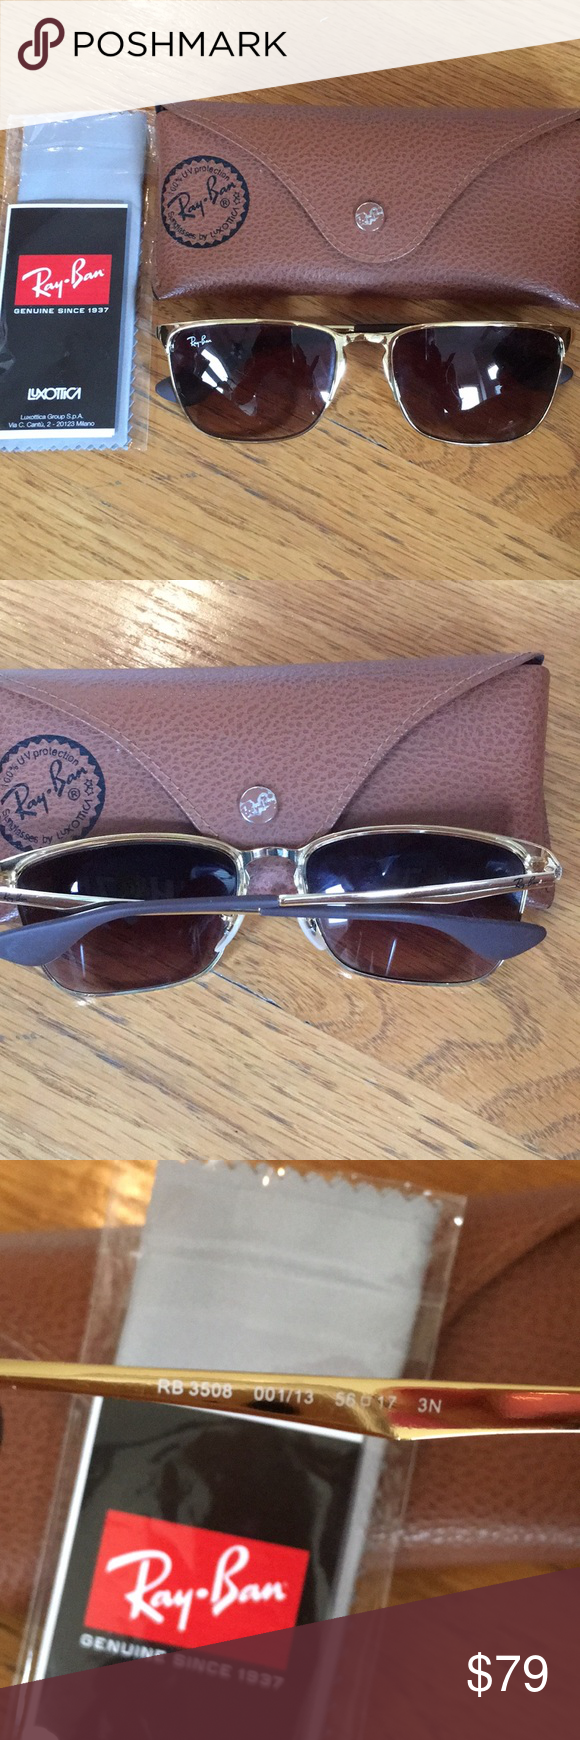 Ray Ban Sunglasses 3508 Ray Ban Sunglasses. 100% guaranteed authentic.  Excellent condition. 116c7290c5